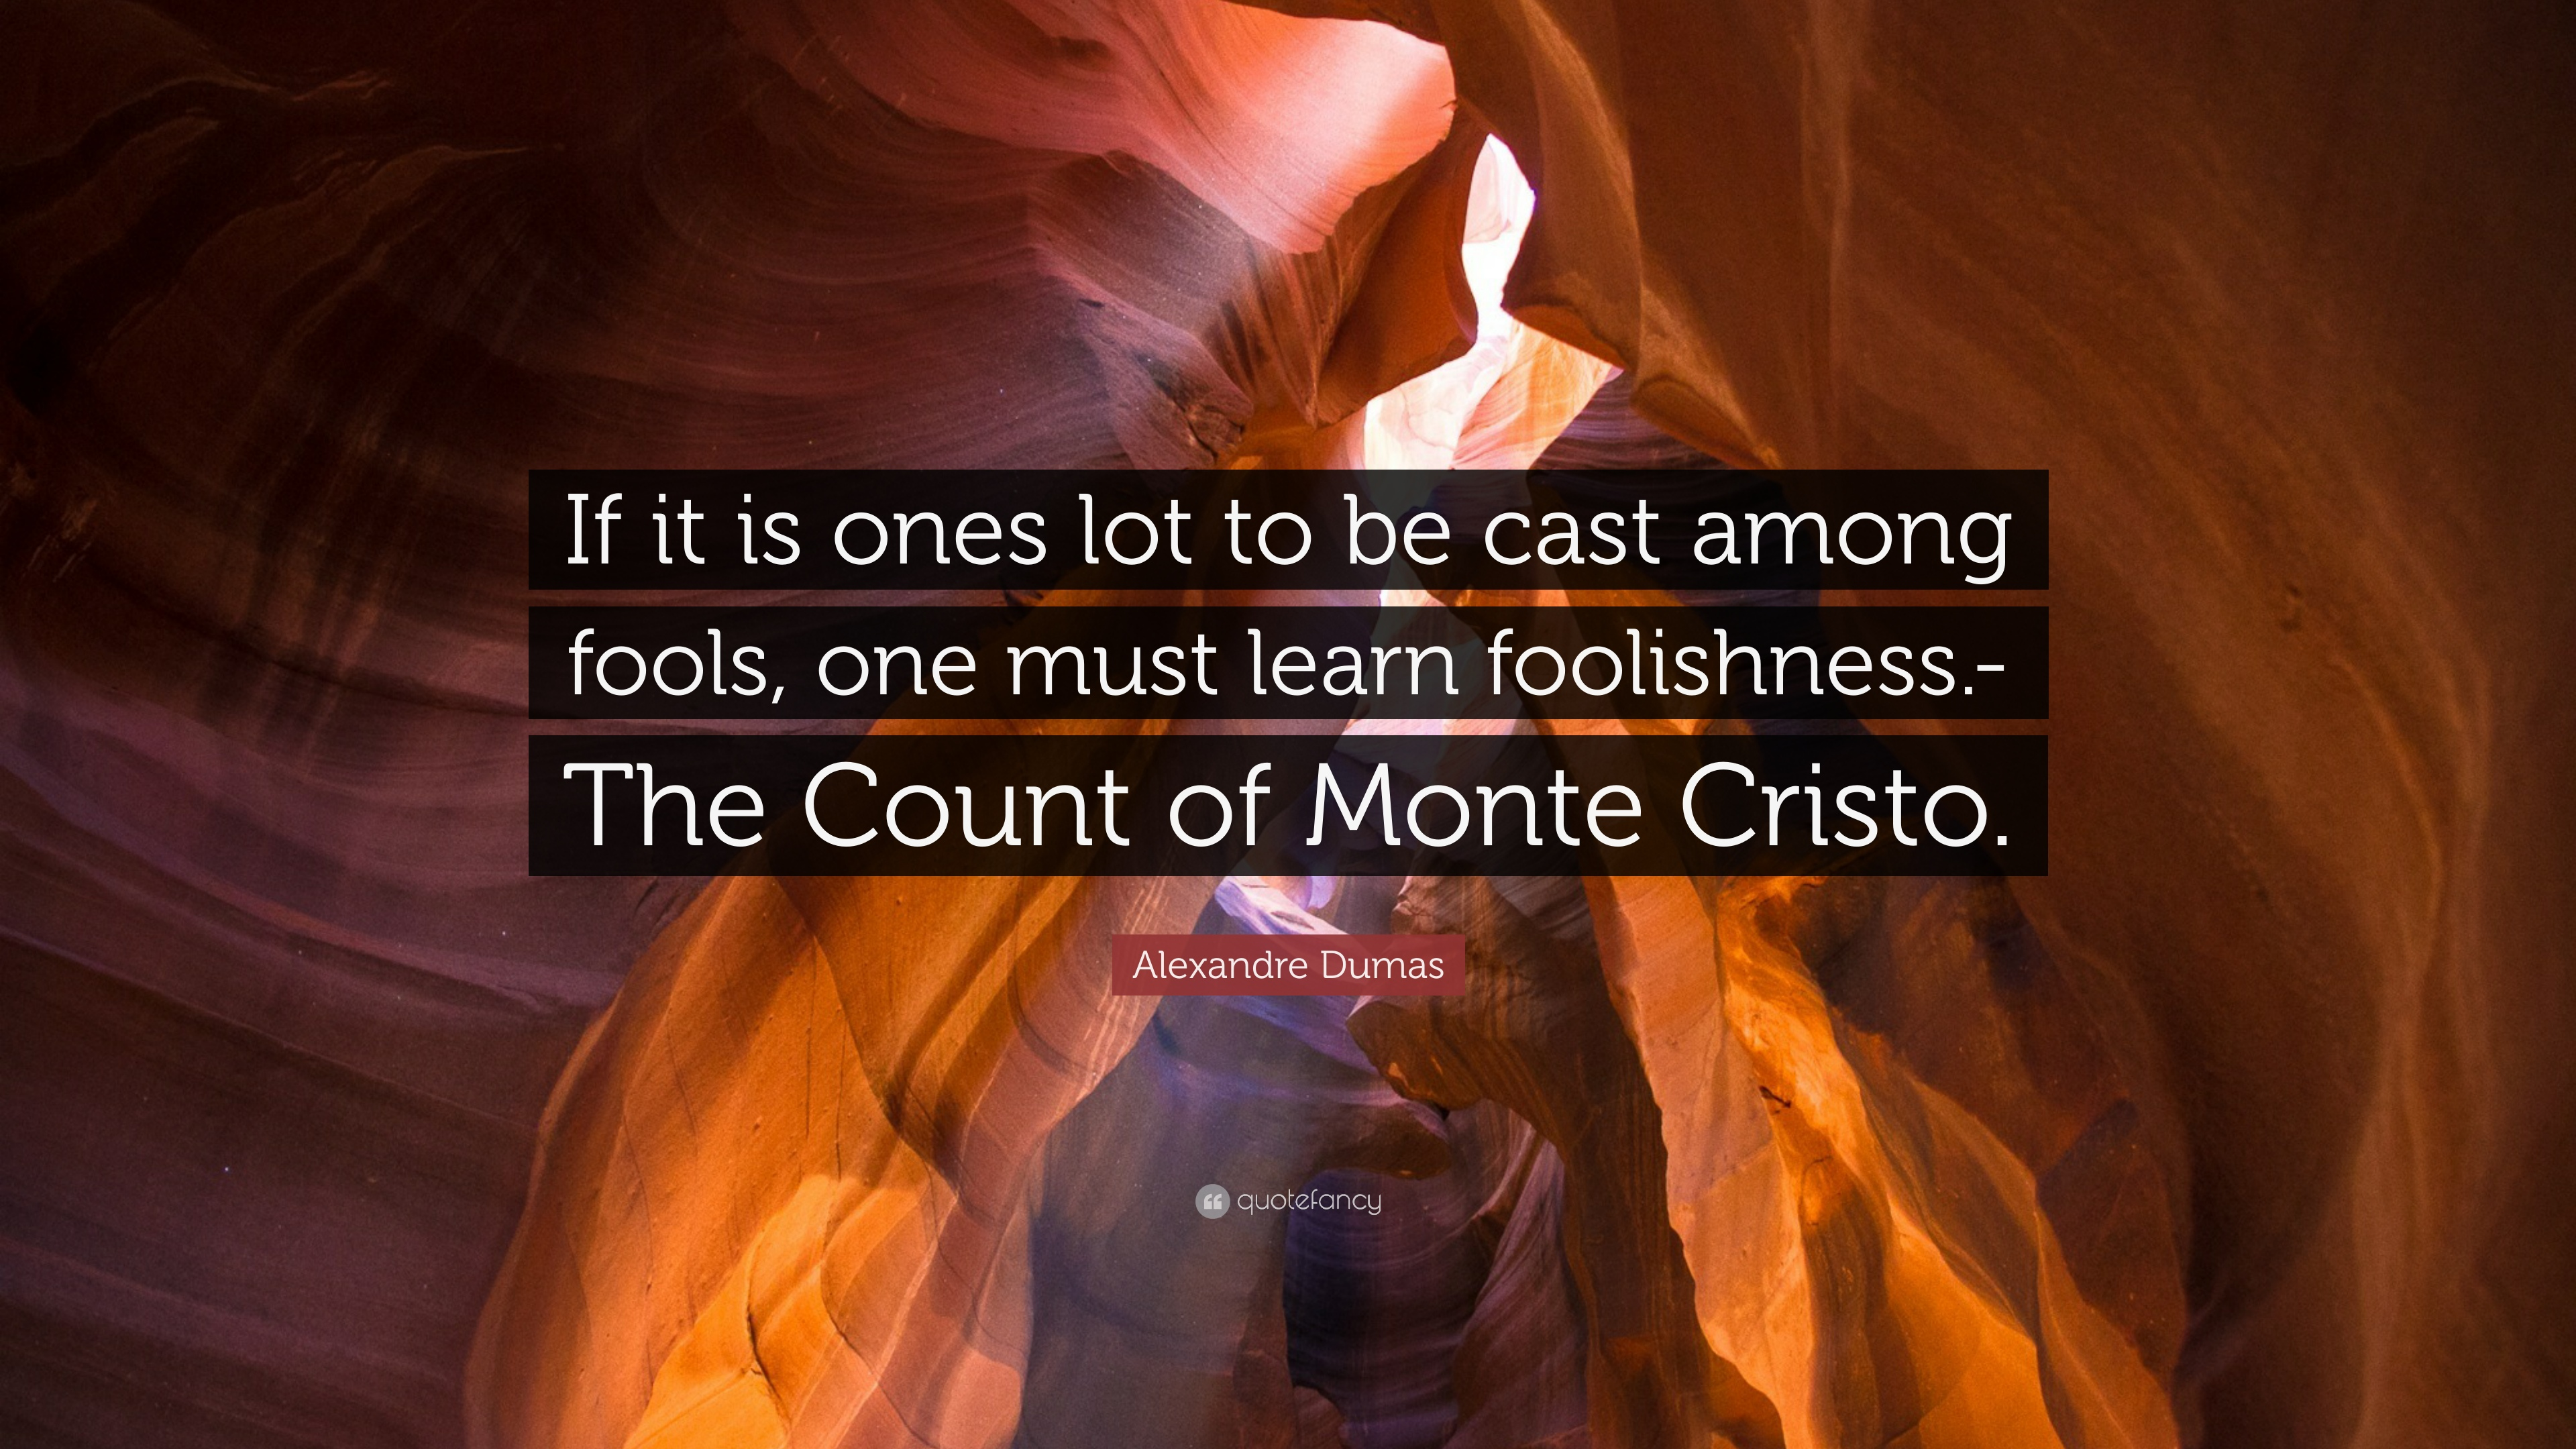 Alexandre Dumas Quote If It Is Ones Lot To Be Cast Among Fools